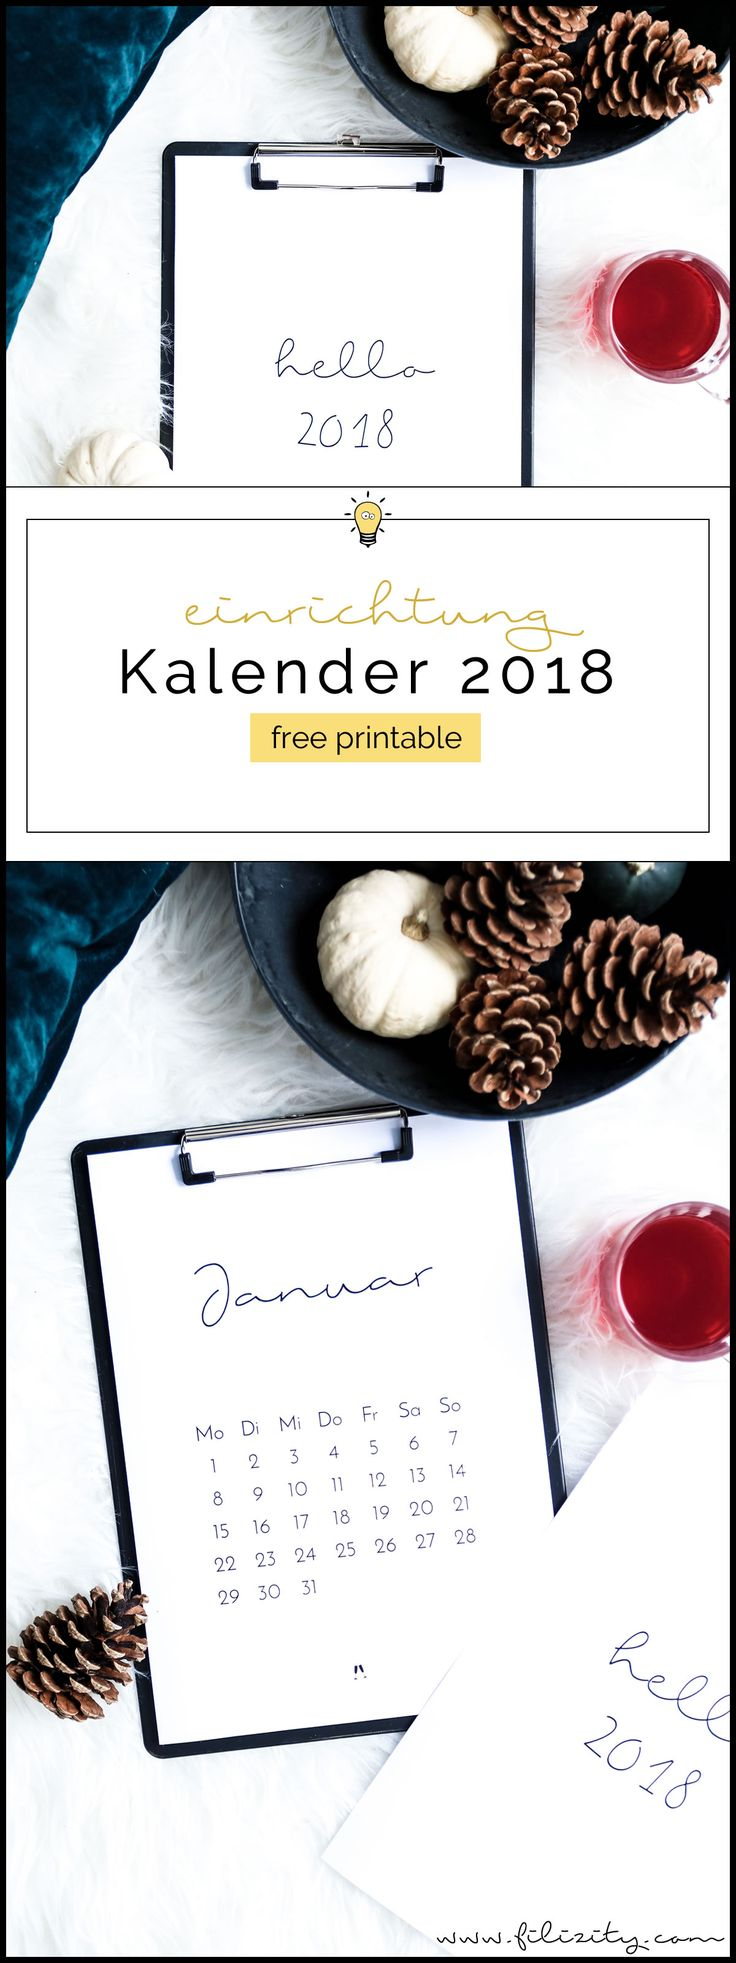 free printable minimalistischer kalender f r 2018 diy deko selber machen pinterest. Black Bedroom Furniture Sets. Home Design Ideas